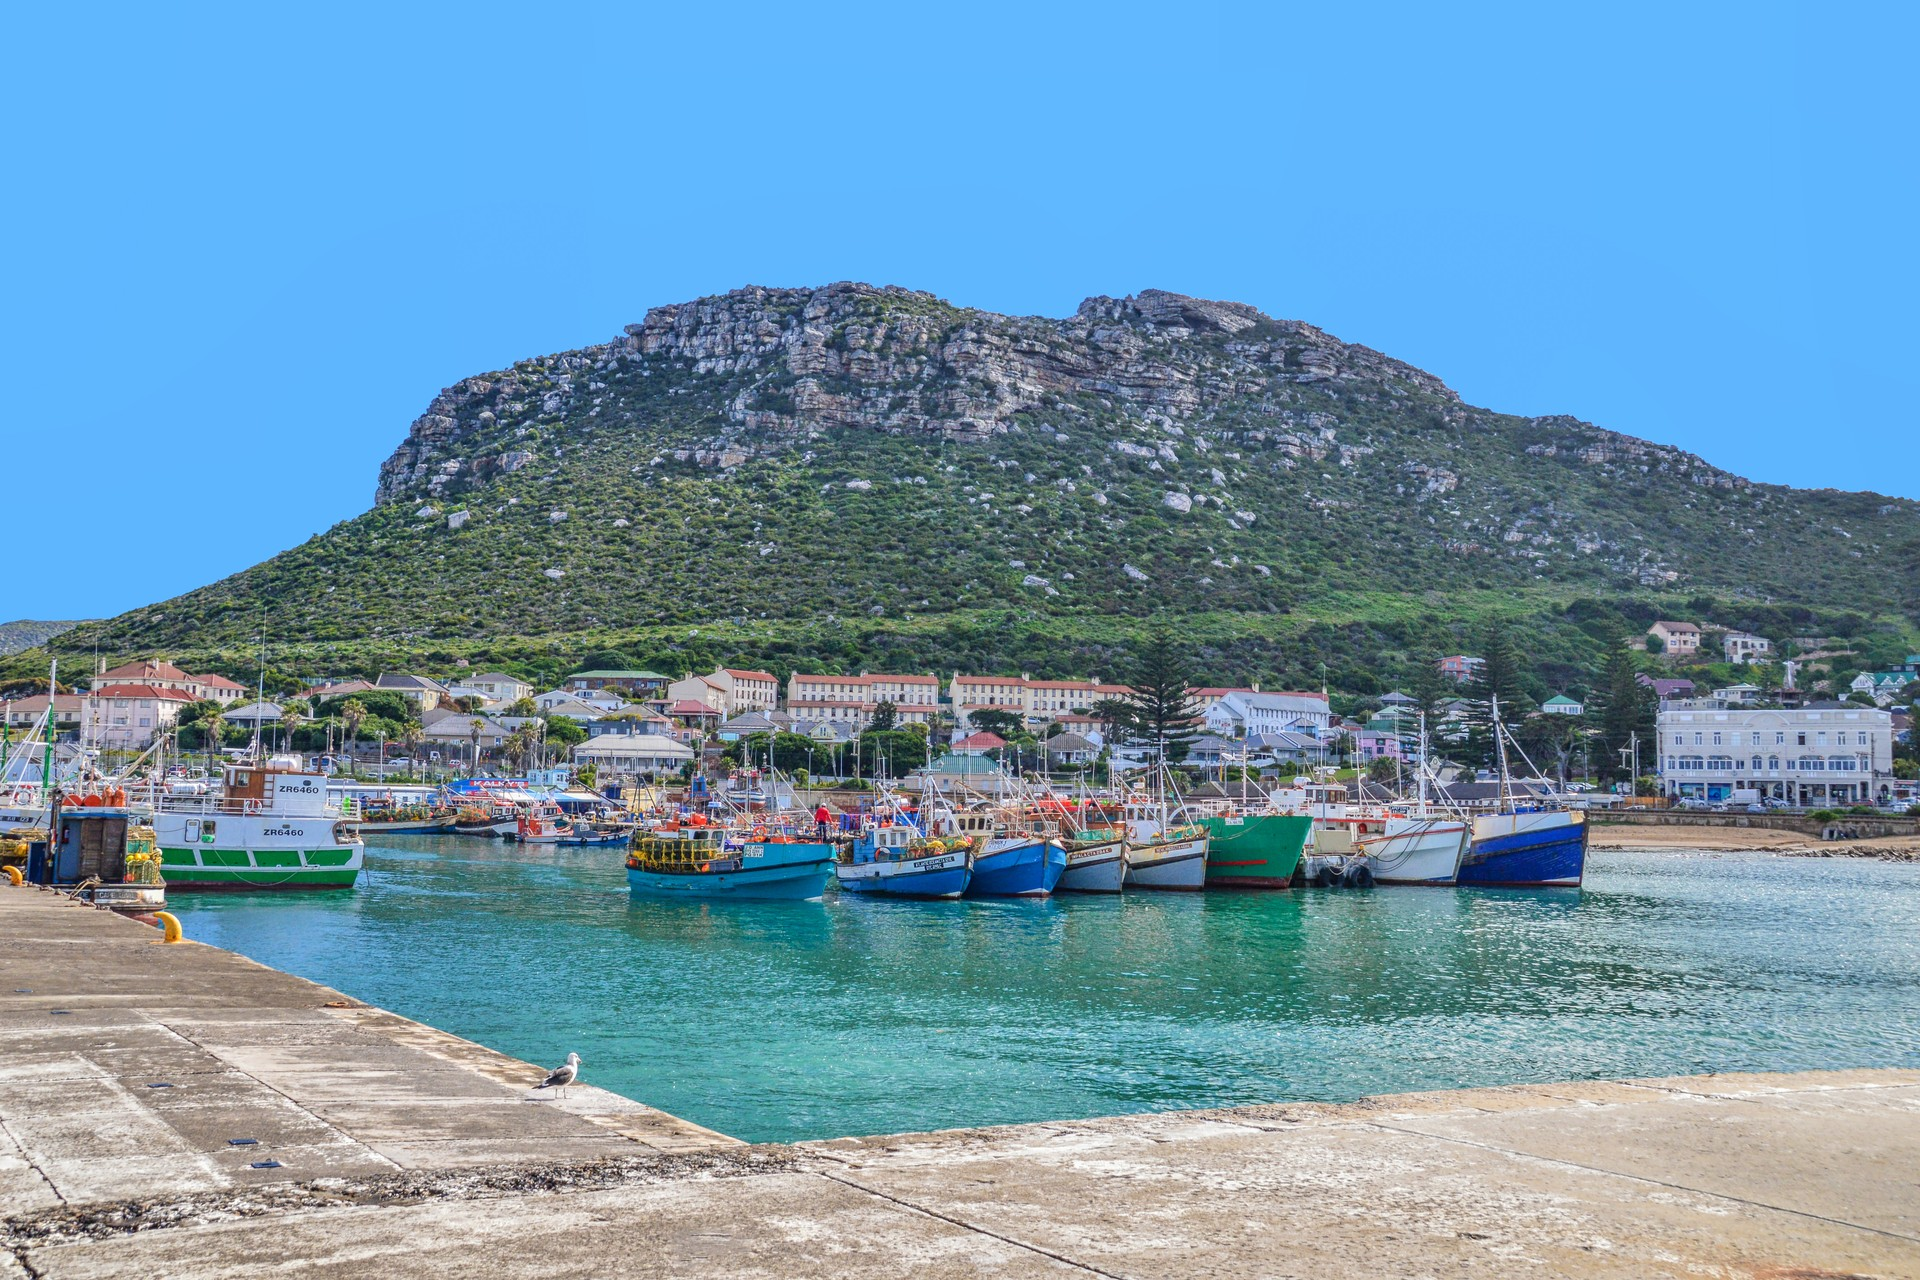 Boats in Kalk Bay Harbour in Cape Town